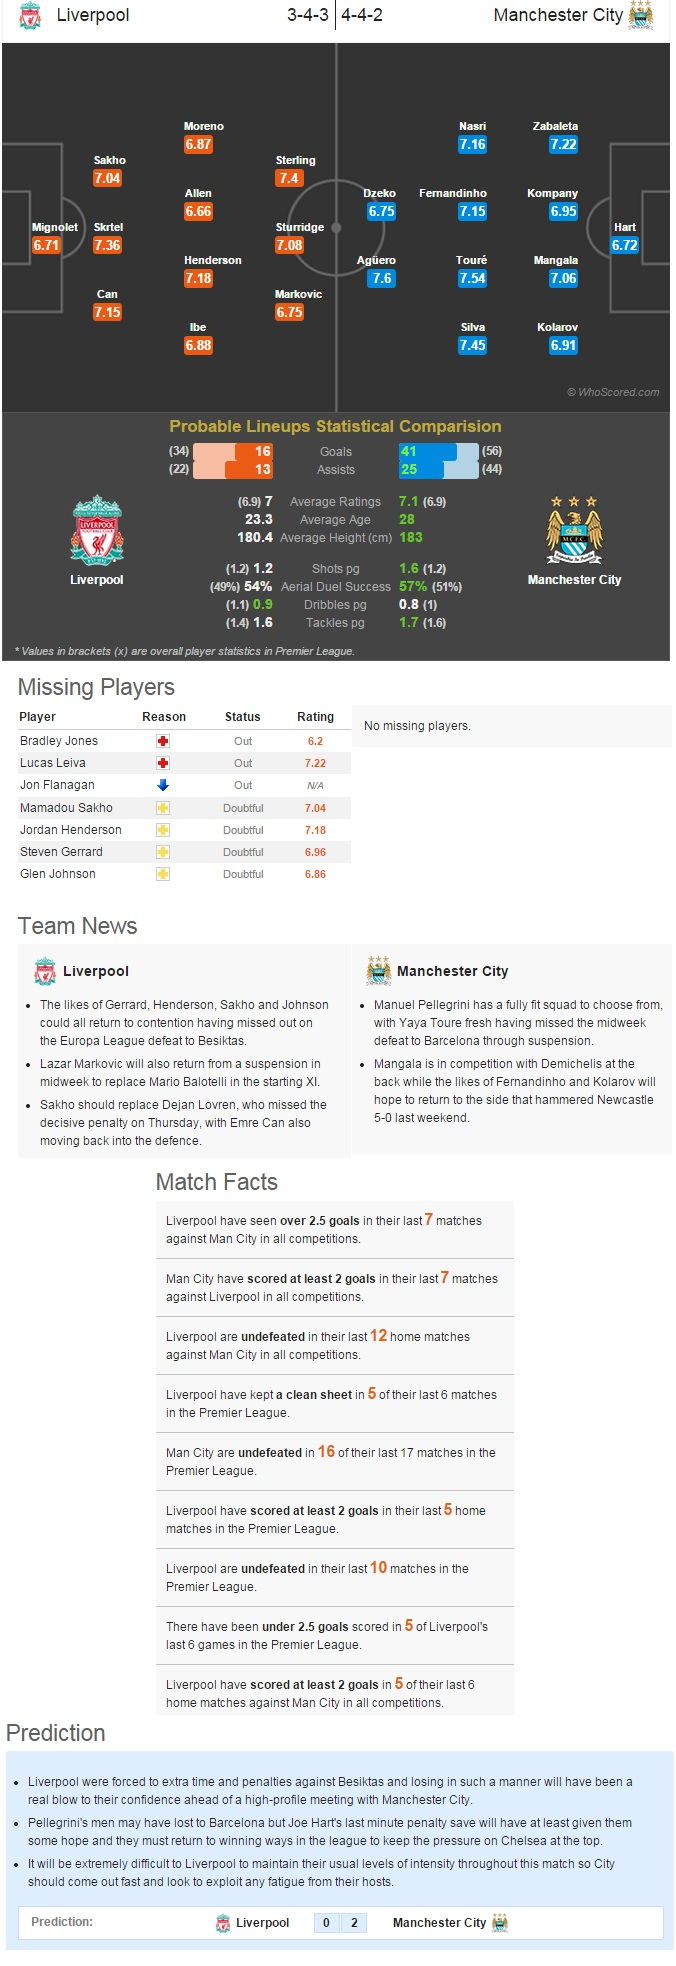 Liverpool Mancchester City